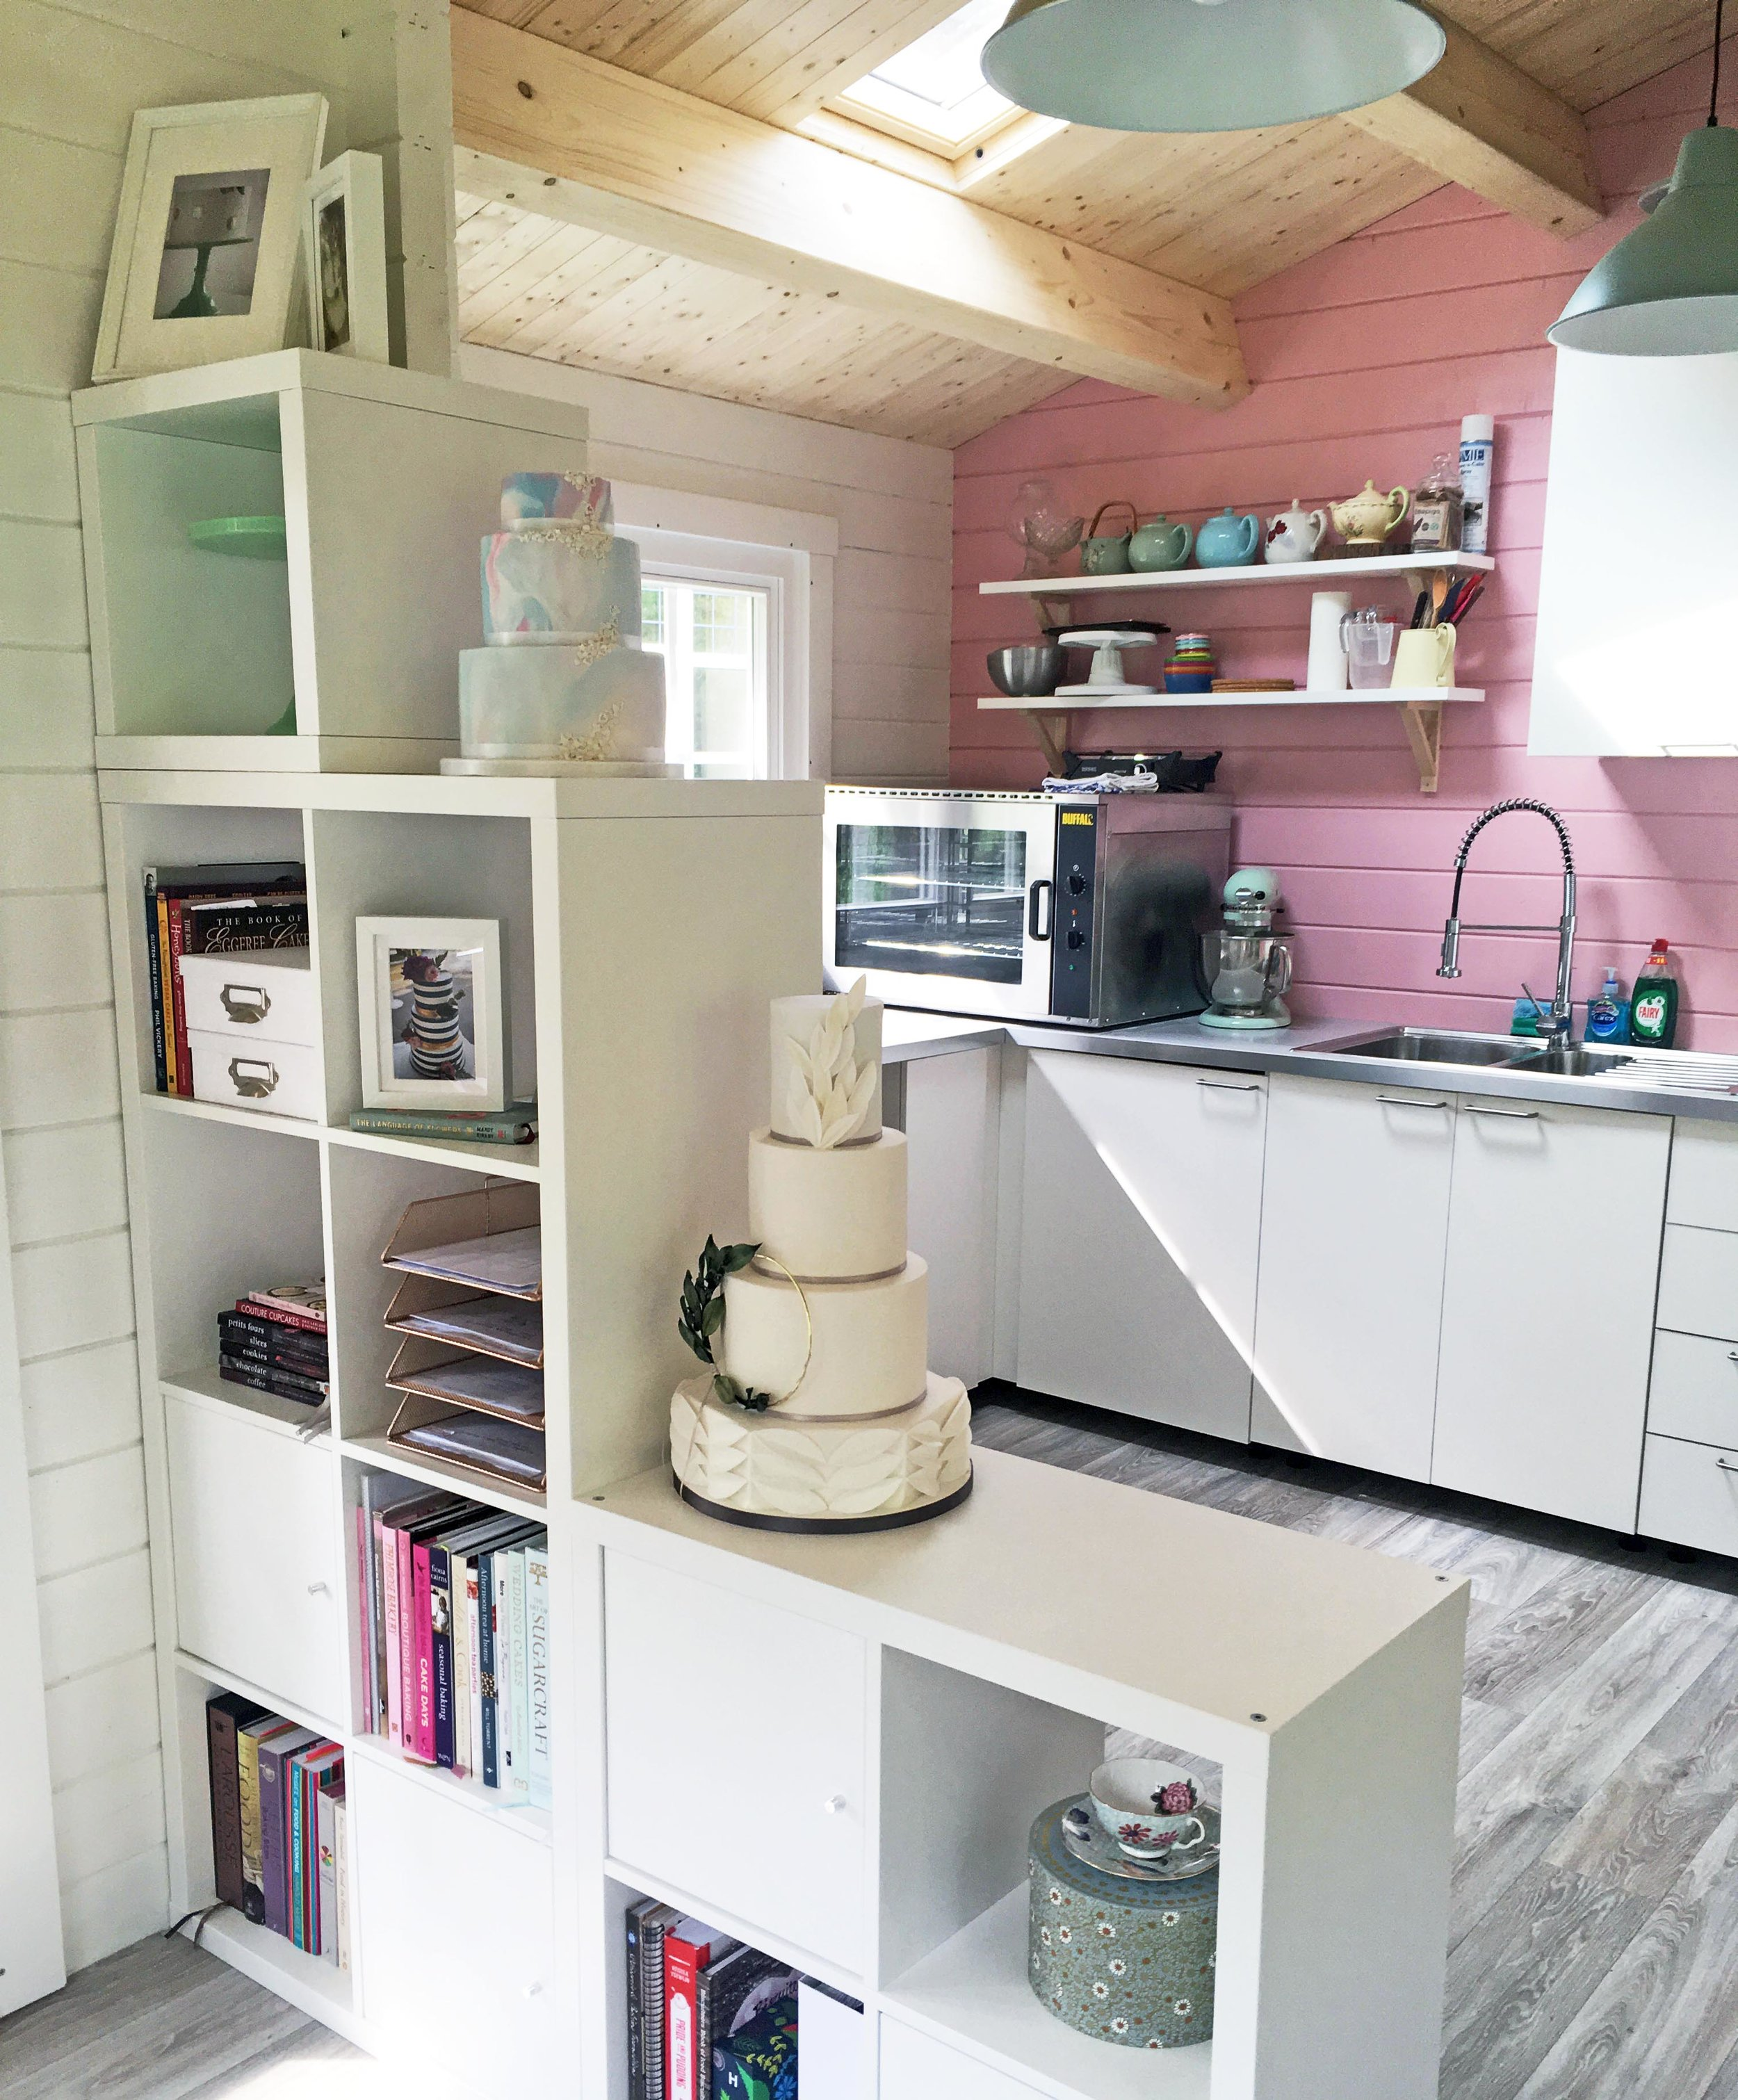 Cake studio kitchen